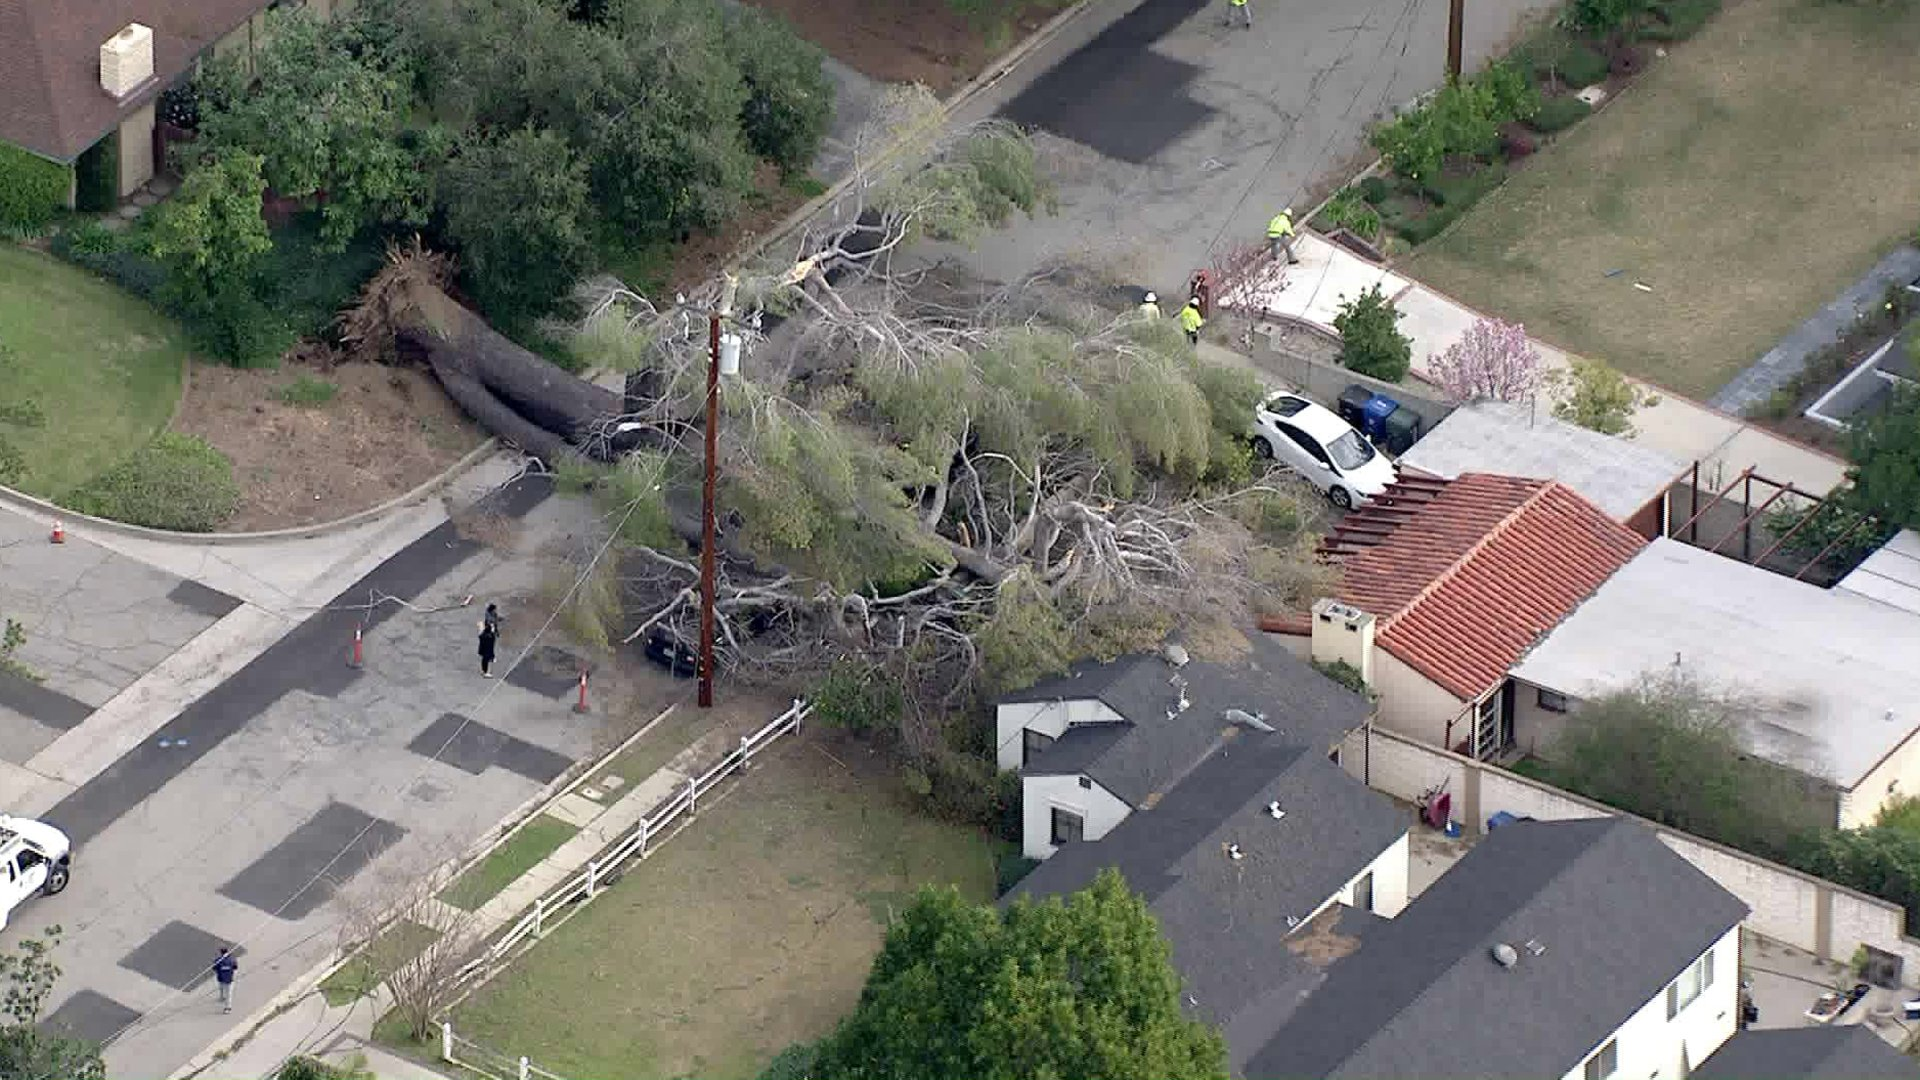 A massive tree was uprooted in the 700 block of Fairview Avenue in Sierra Madre as high winds battered Southern California on Feb. 3, 2020. (Credit: Sky5)